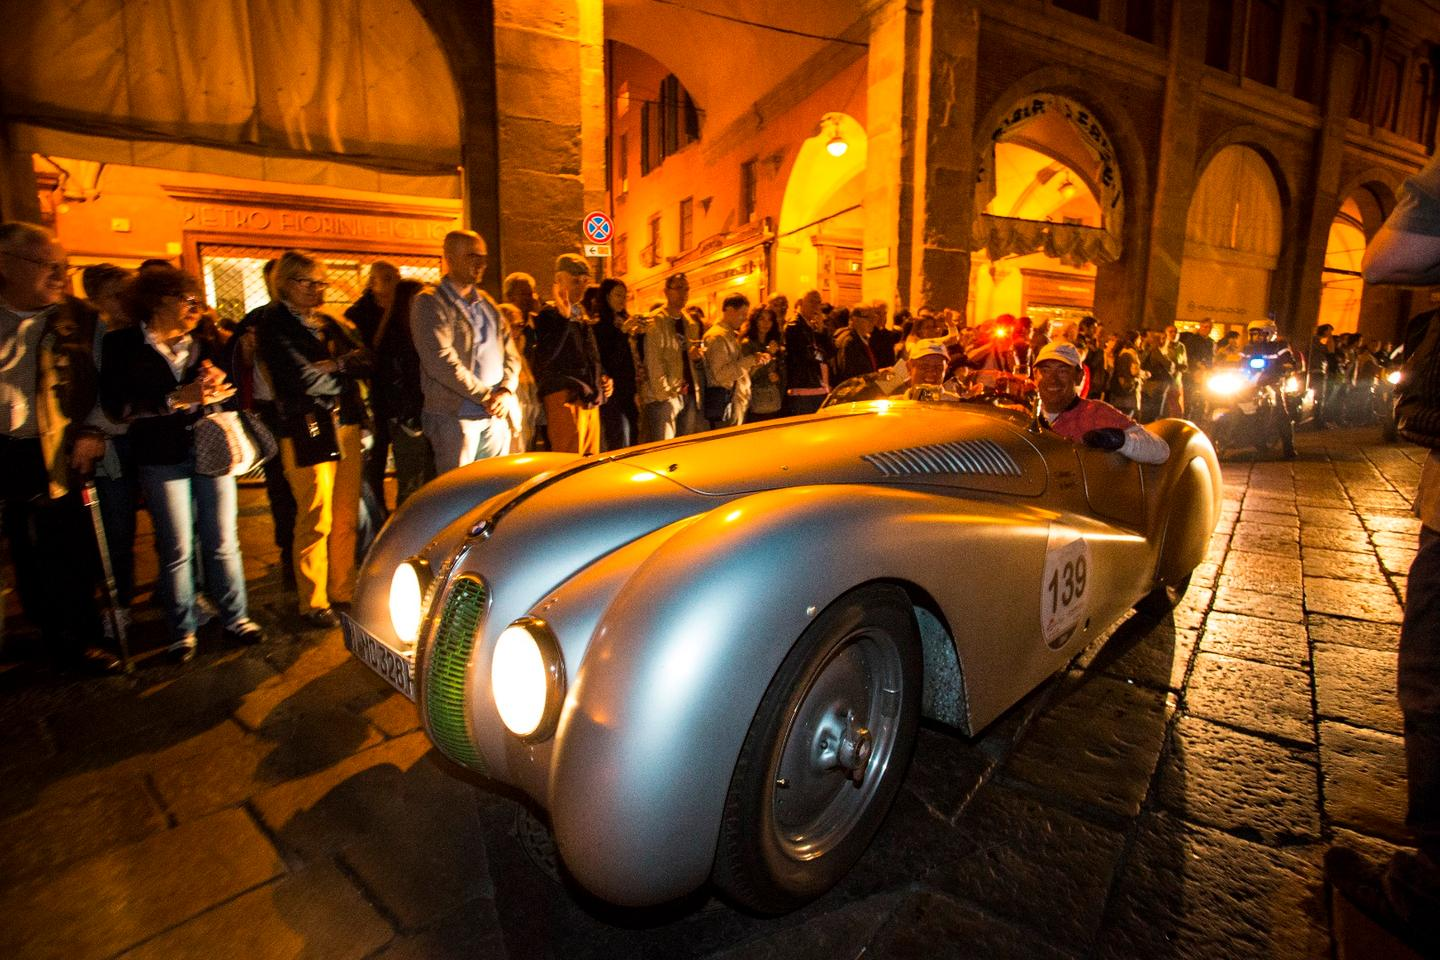 The BMW 328 tackling Millie Miglia